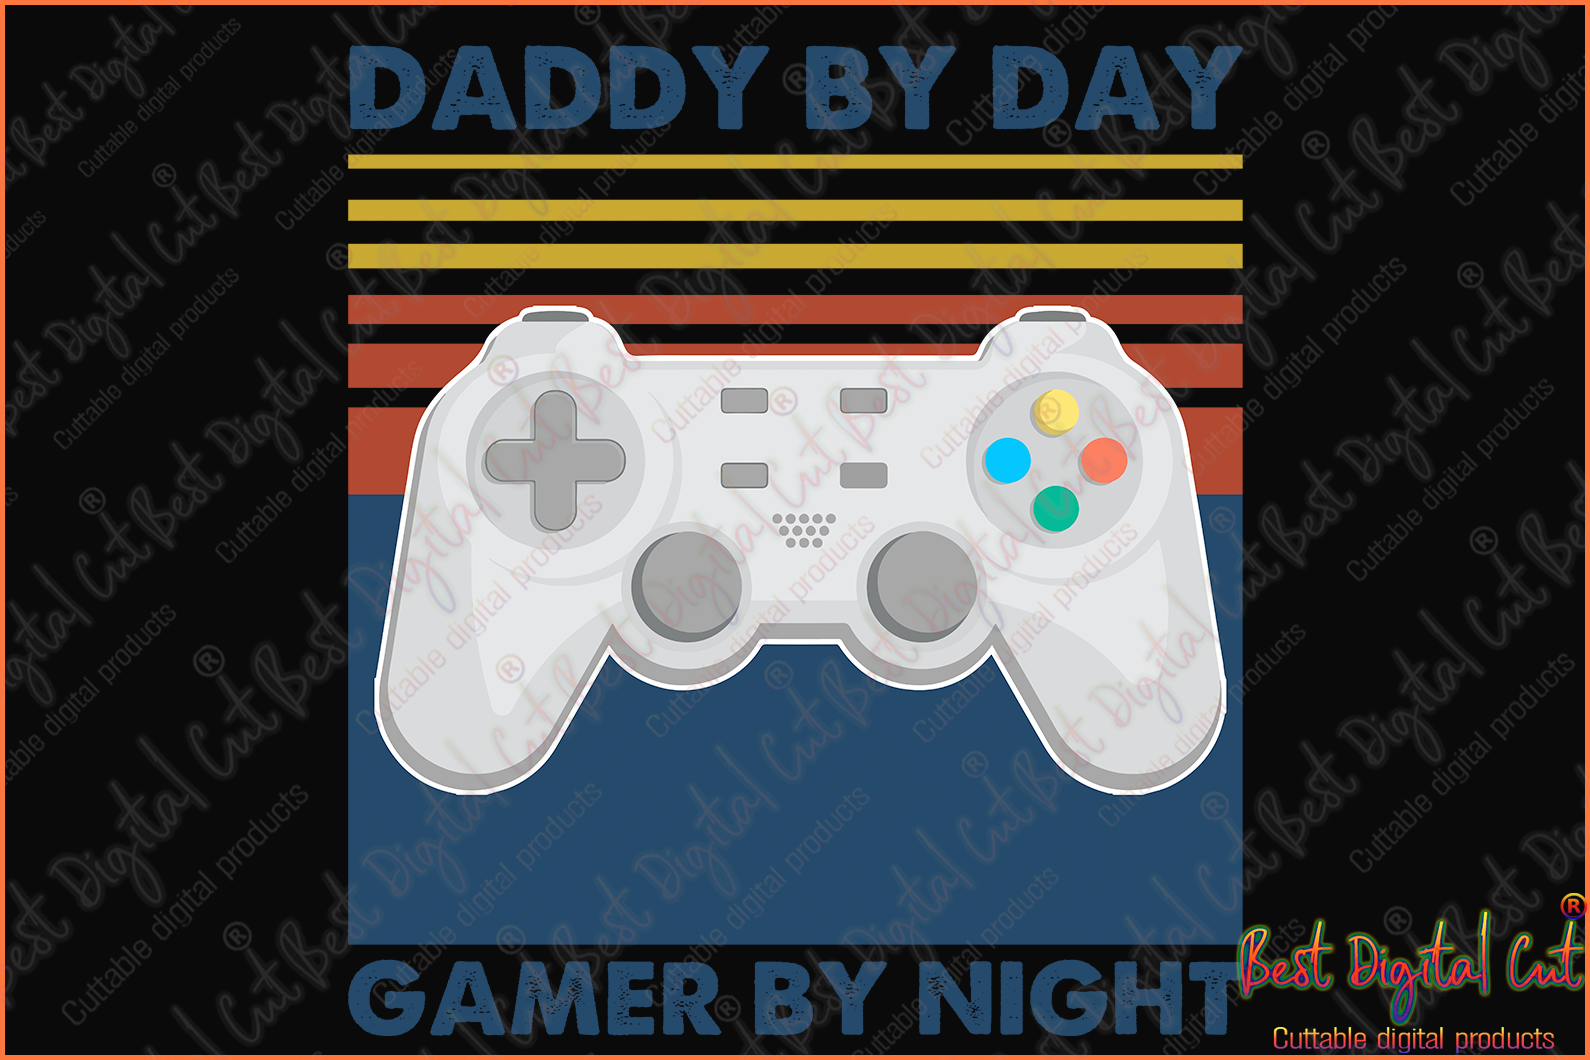 Daddy by day gamer by night svg,happy father's day,father's day gift,daddy gamer svg,dad gift svg,daddy's gift,digital file, vinyl for cricut, svg cut files, svg clipart, silhouette svg, cricut svg files